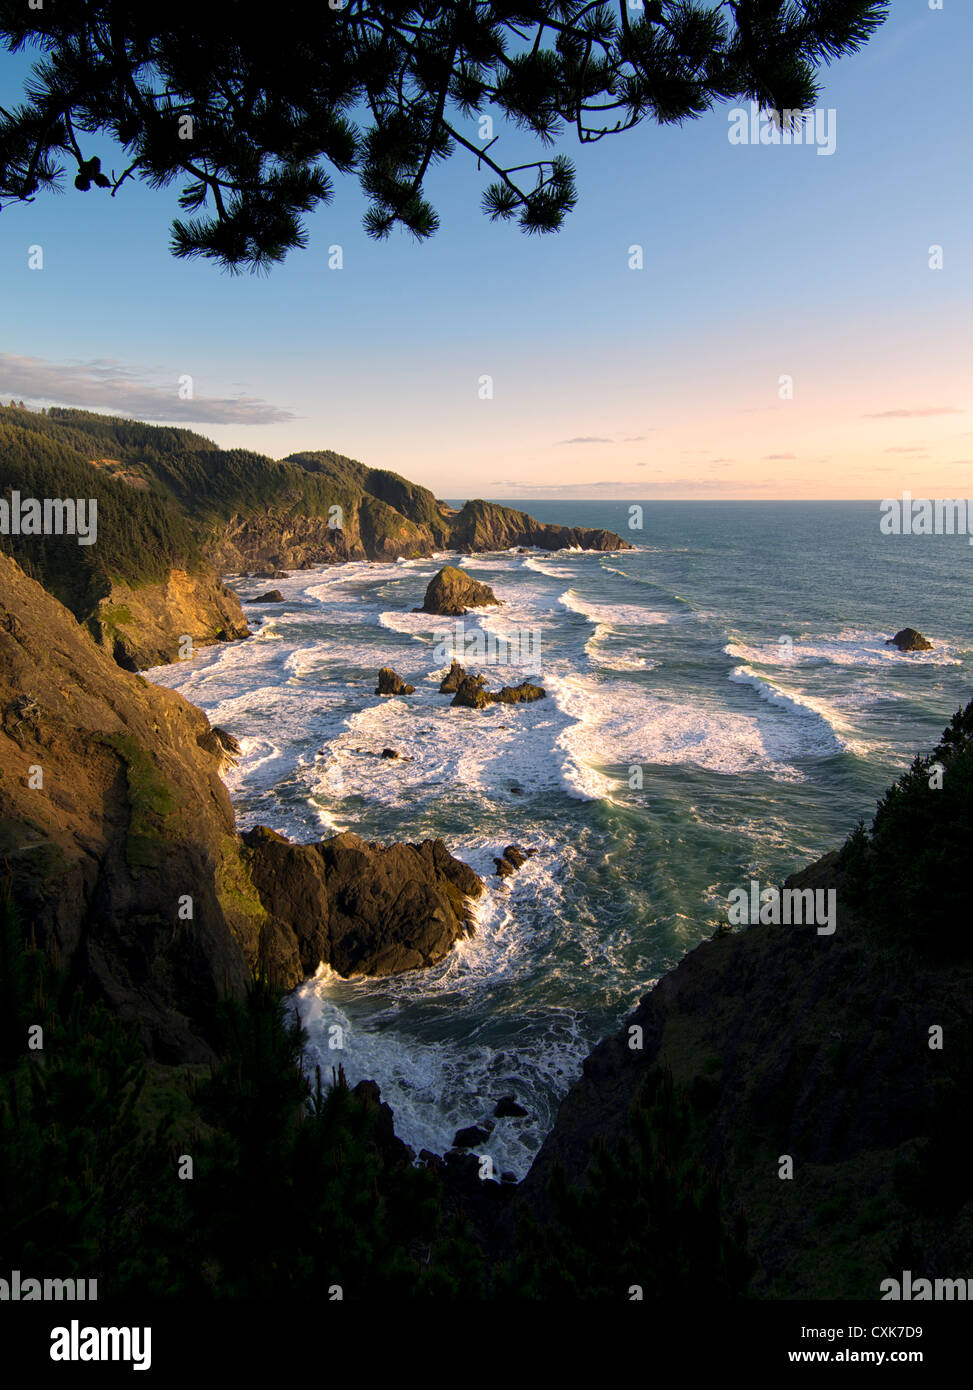 Overhanging tree and surf at Samuel H. Boardman State Scenic Corridor. Oregon - Stock Image